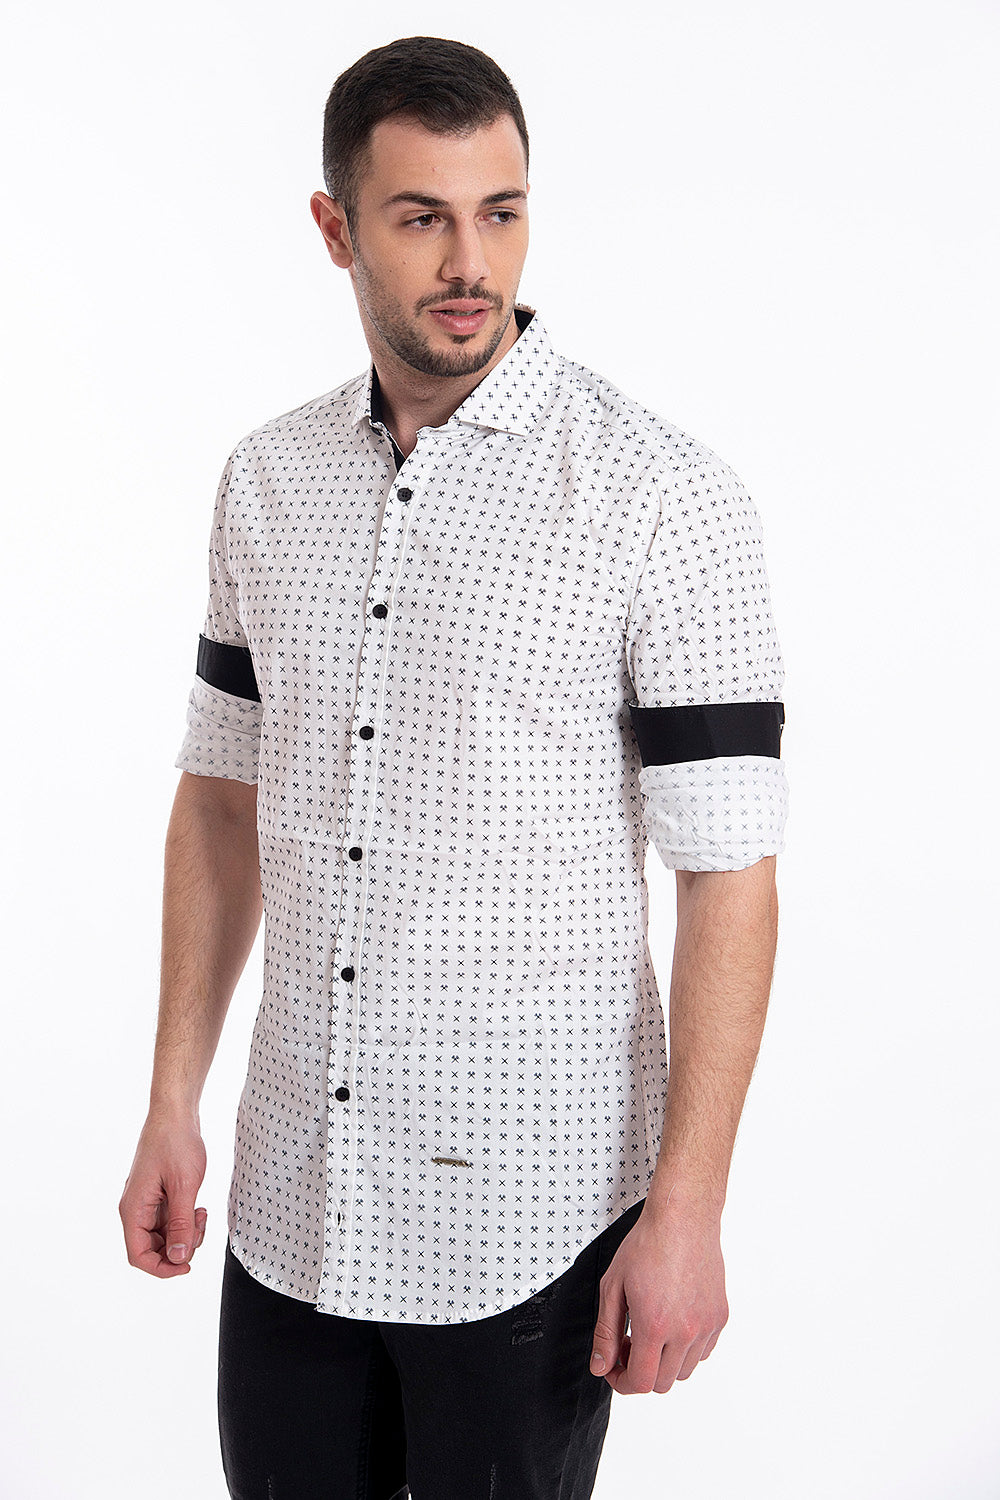 Stefan scissors shirt with contrast collar and cuffs